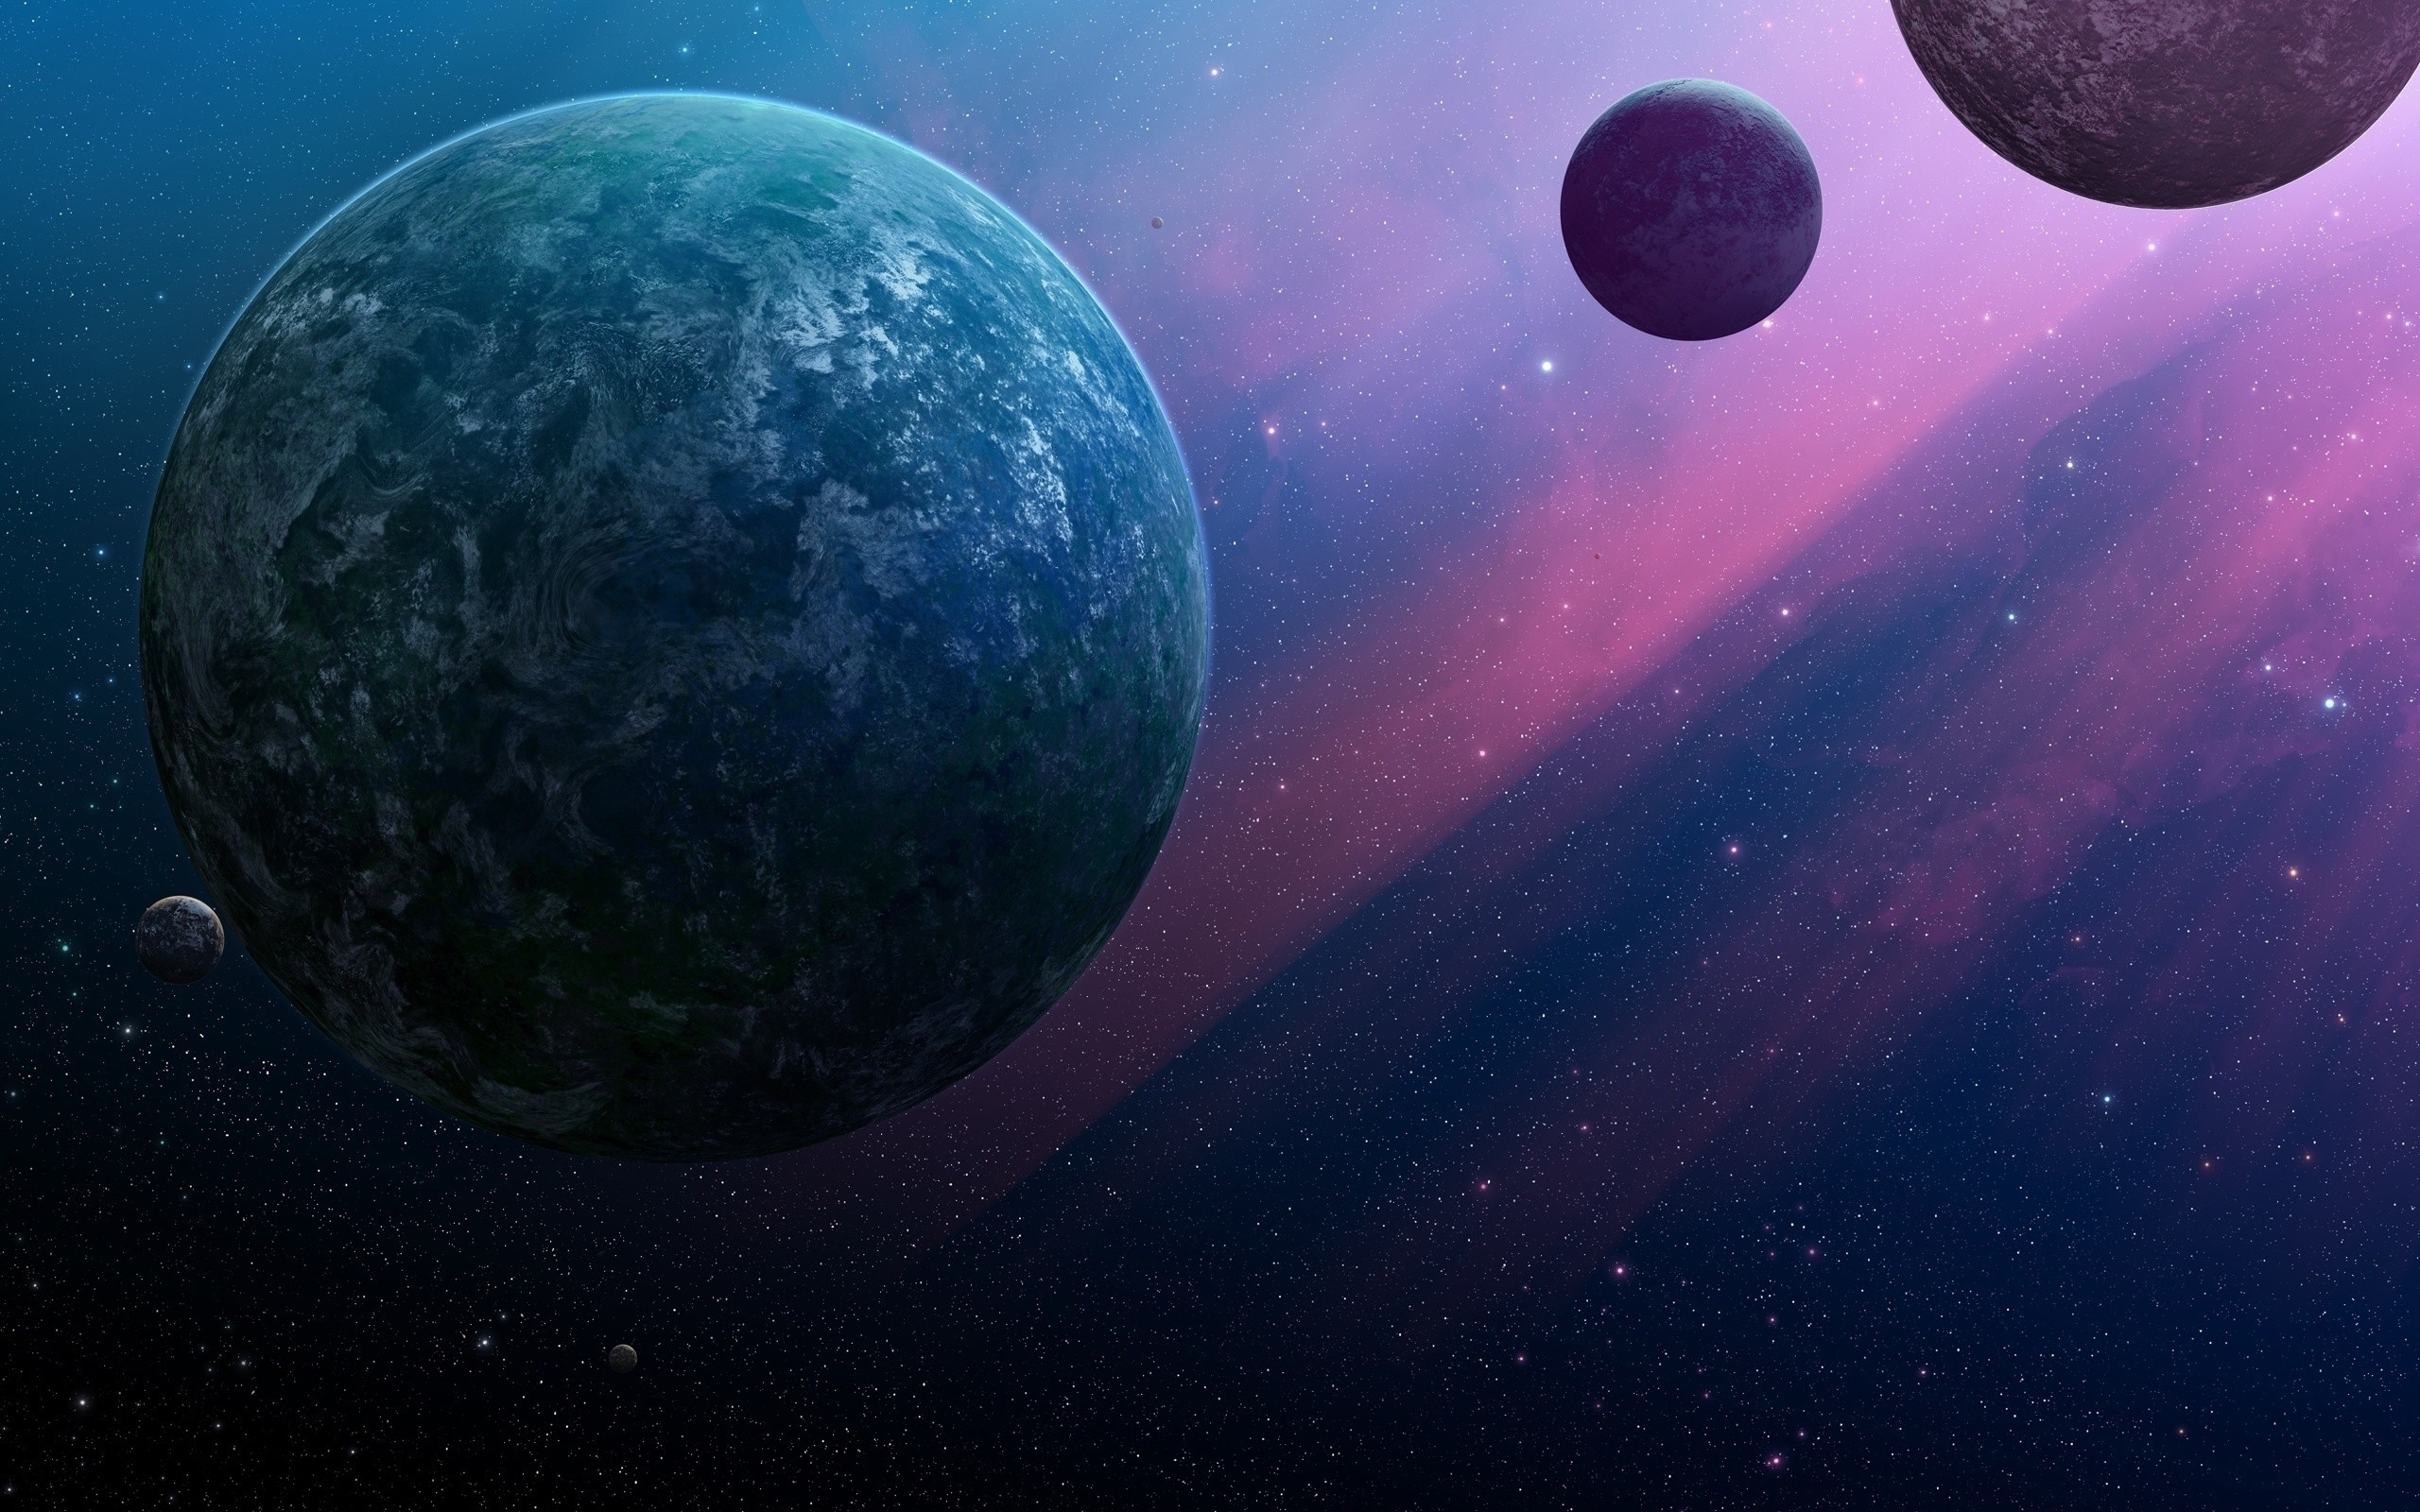 wallpaper outer space planets joejesus josef barton categories space 2560x1600